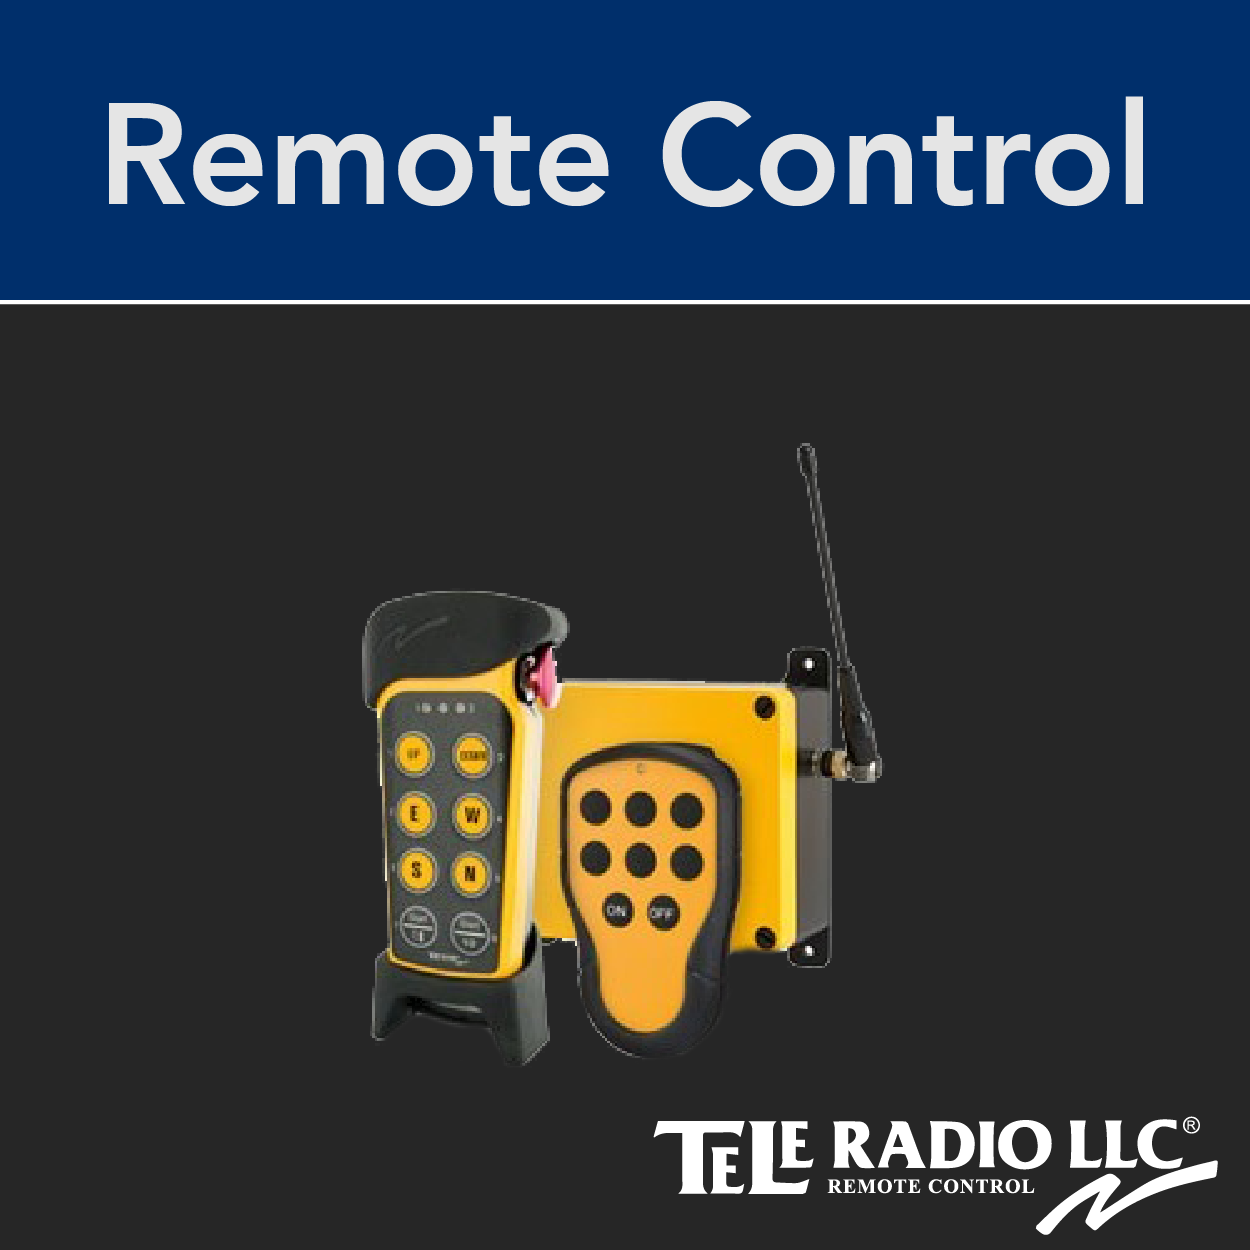 remote_control-14.png